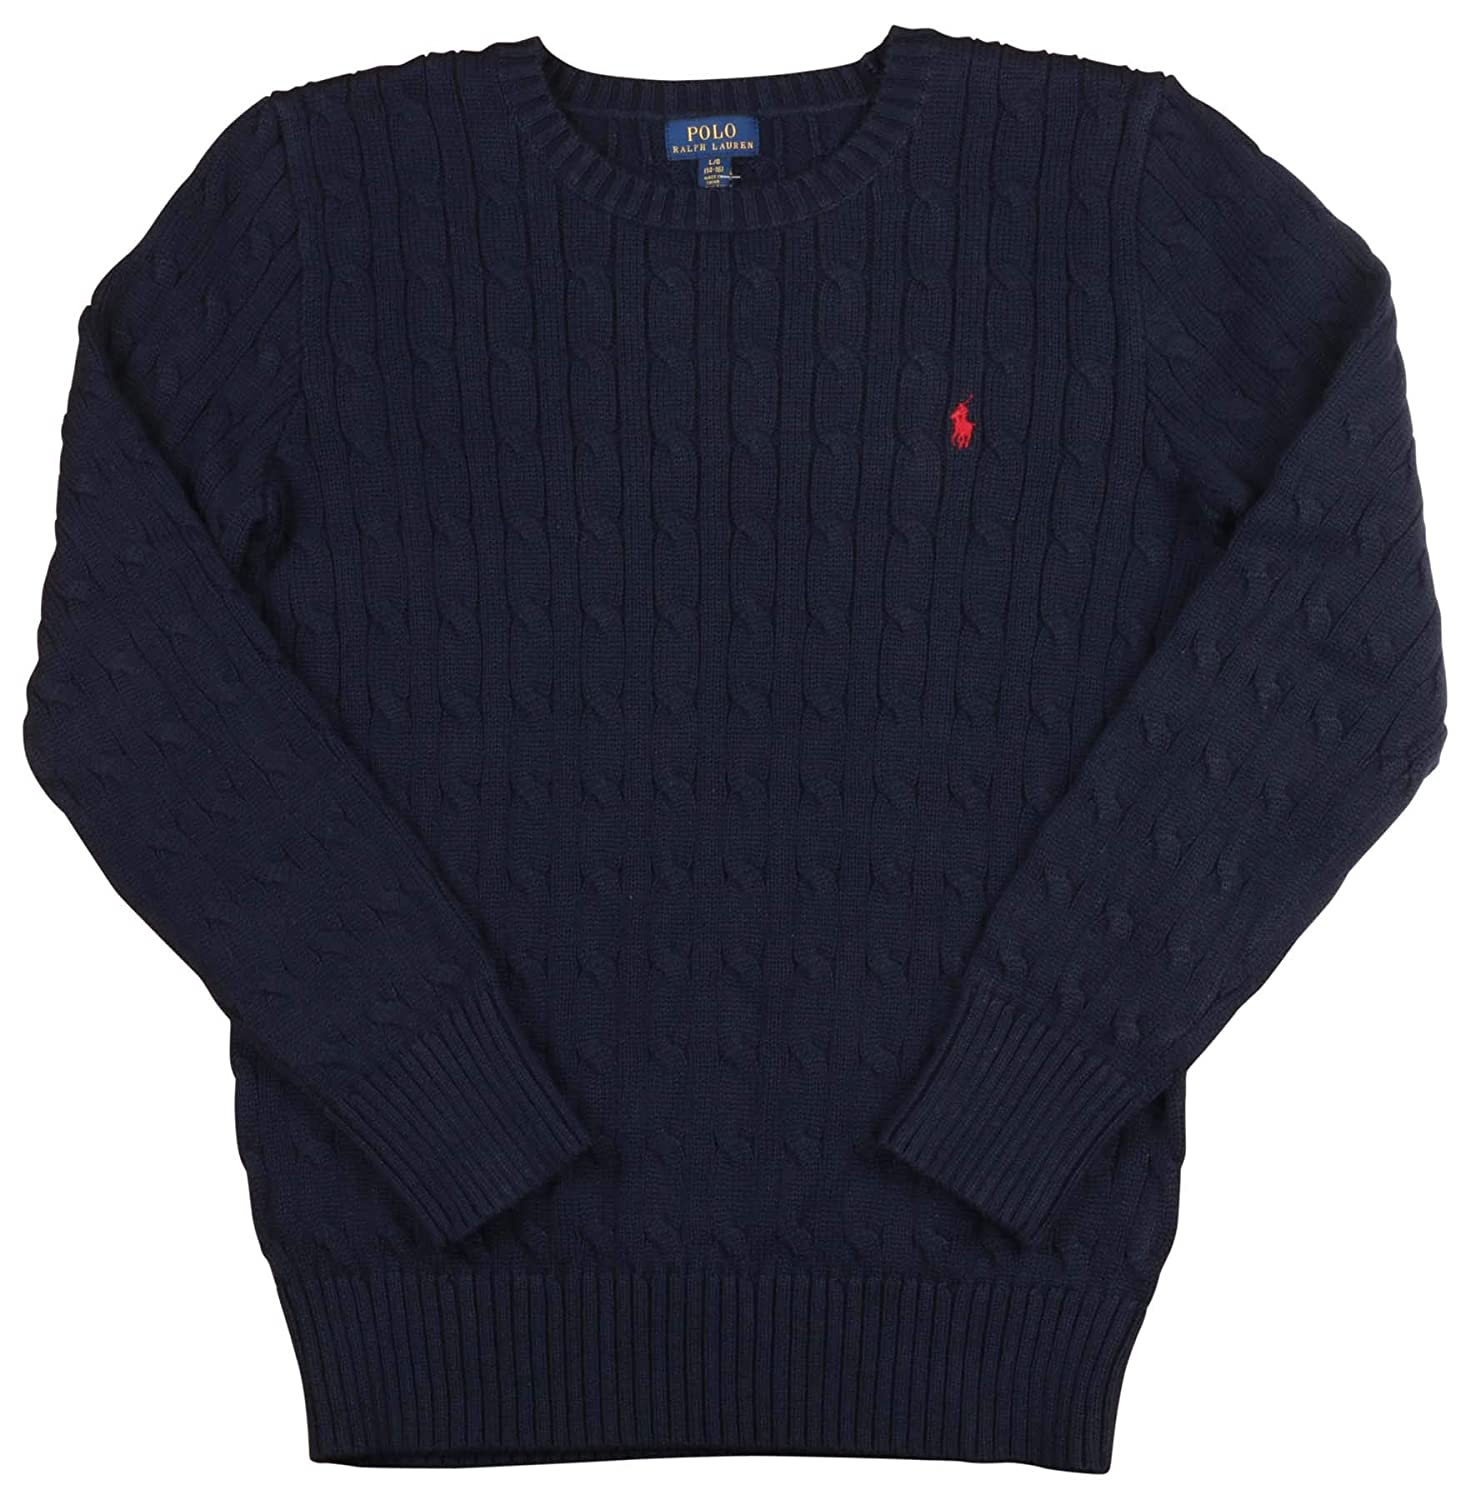 Polo Ralph Lauren Boy's Cable Knit Long Sleeve Crewneck Sweater